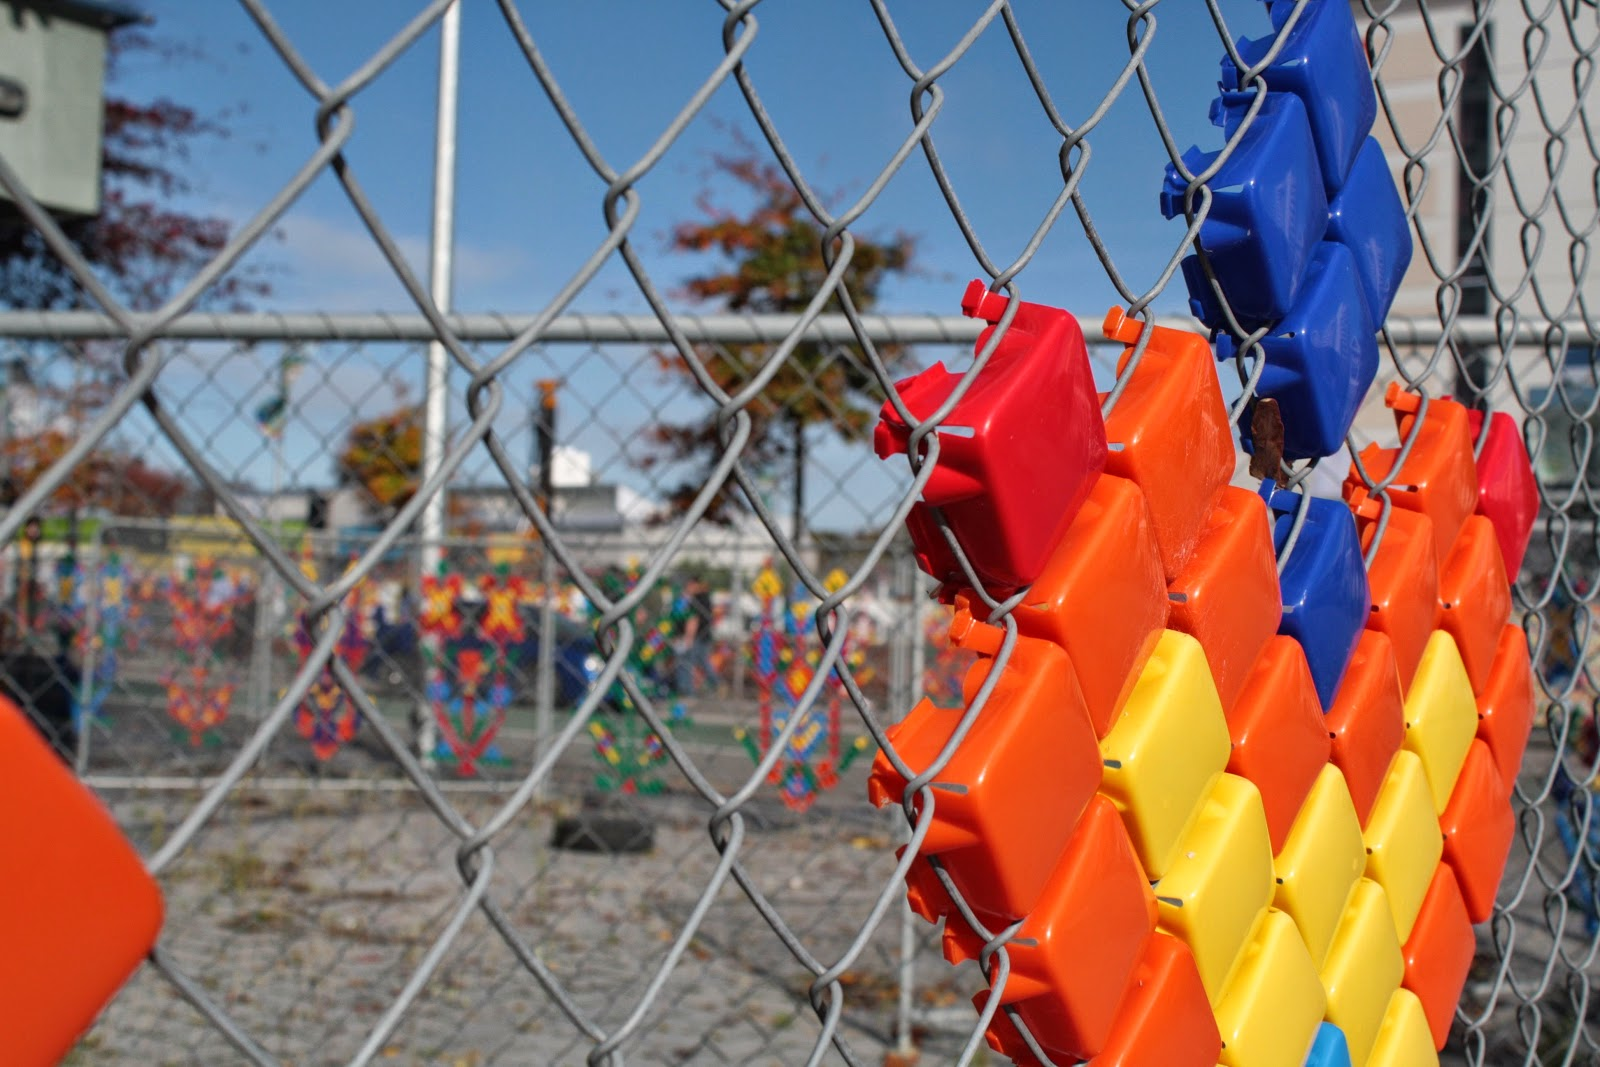 Plastic thingies stuck into hurricane fencing in the shape of flowers.